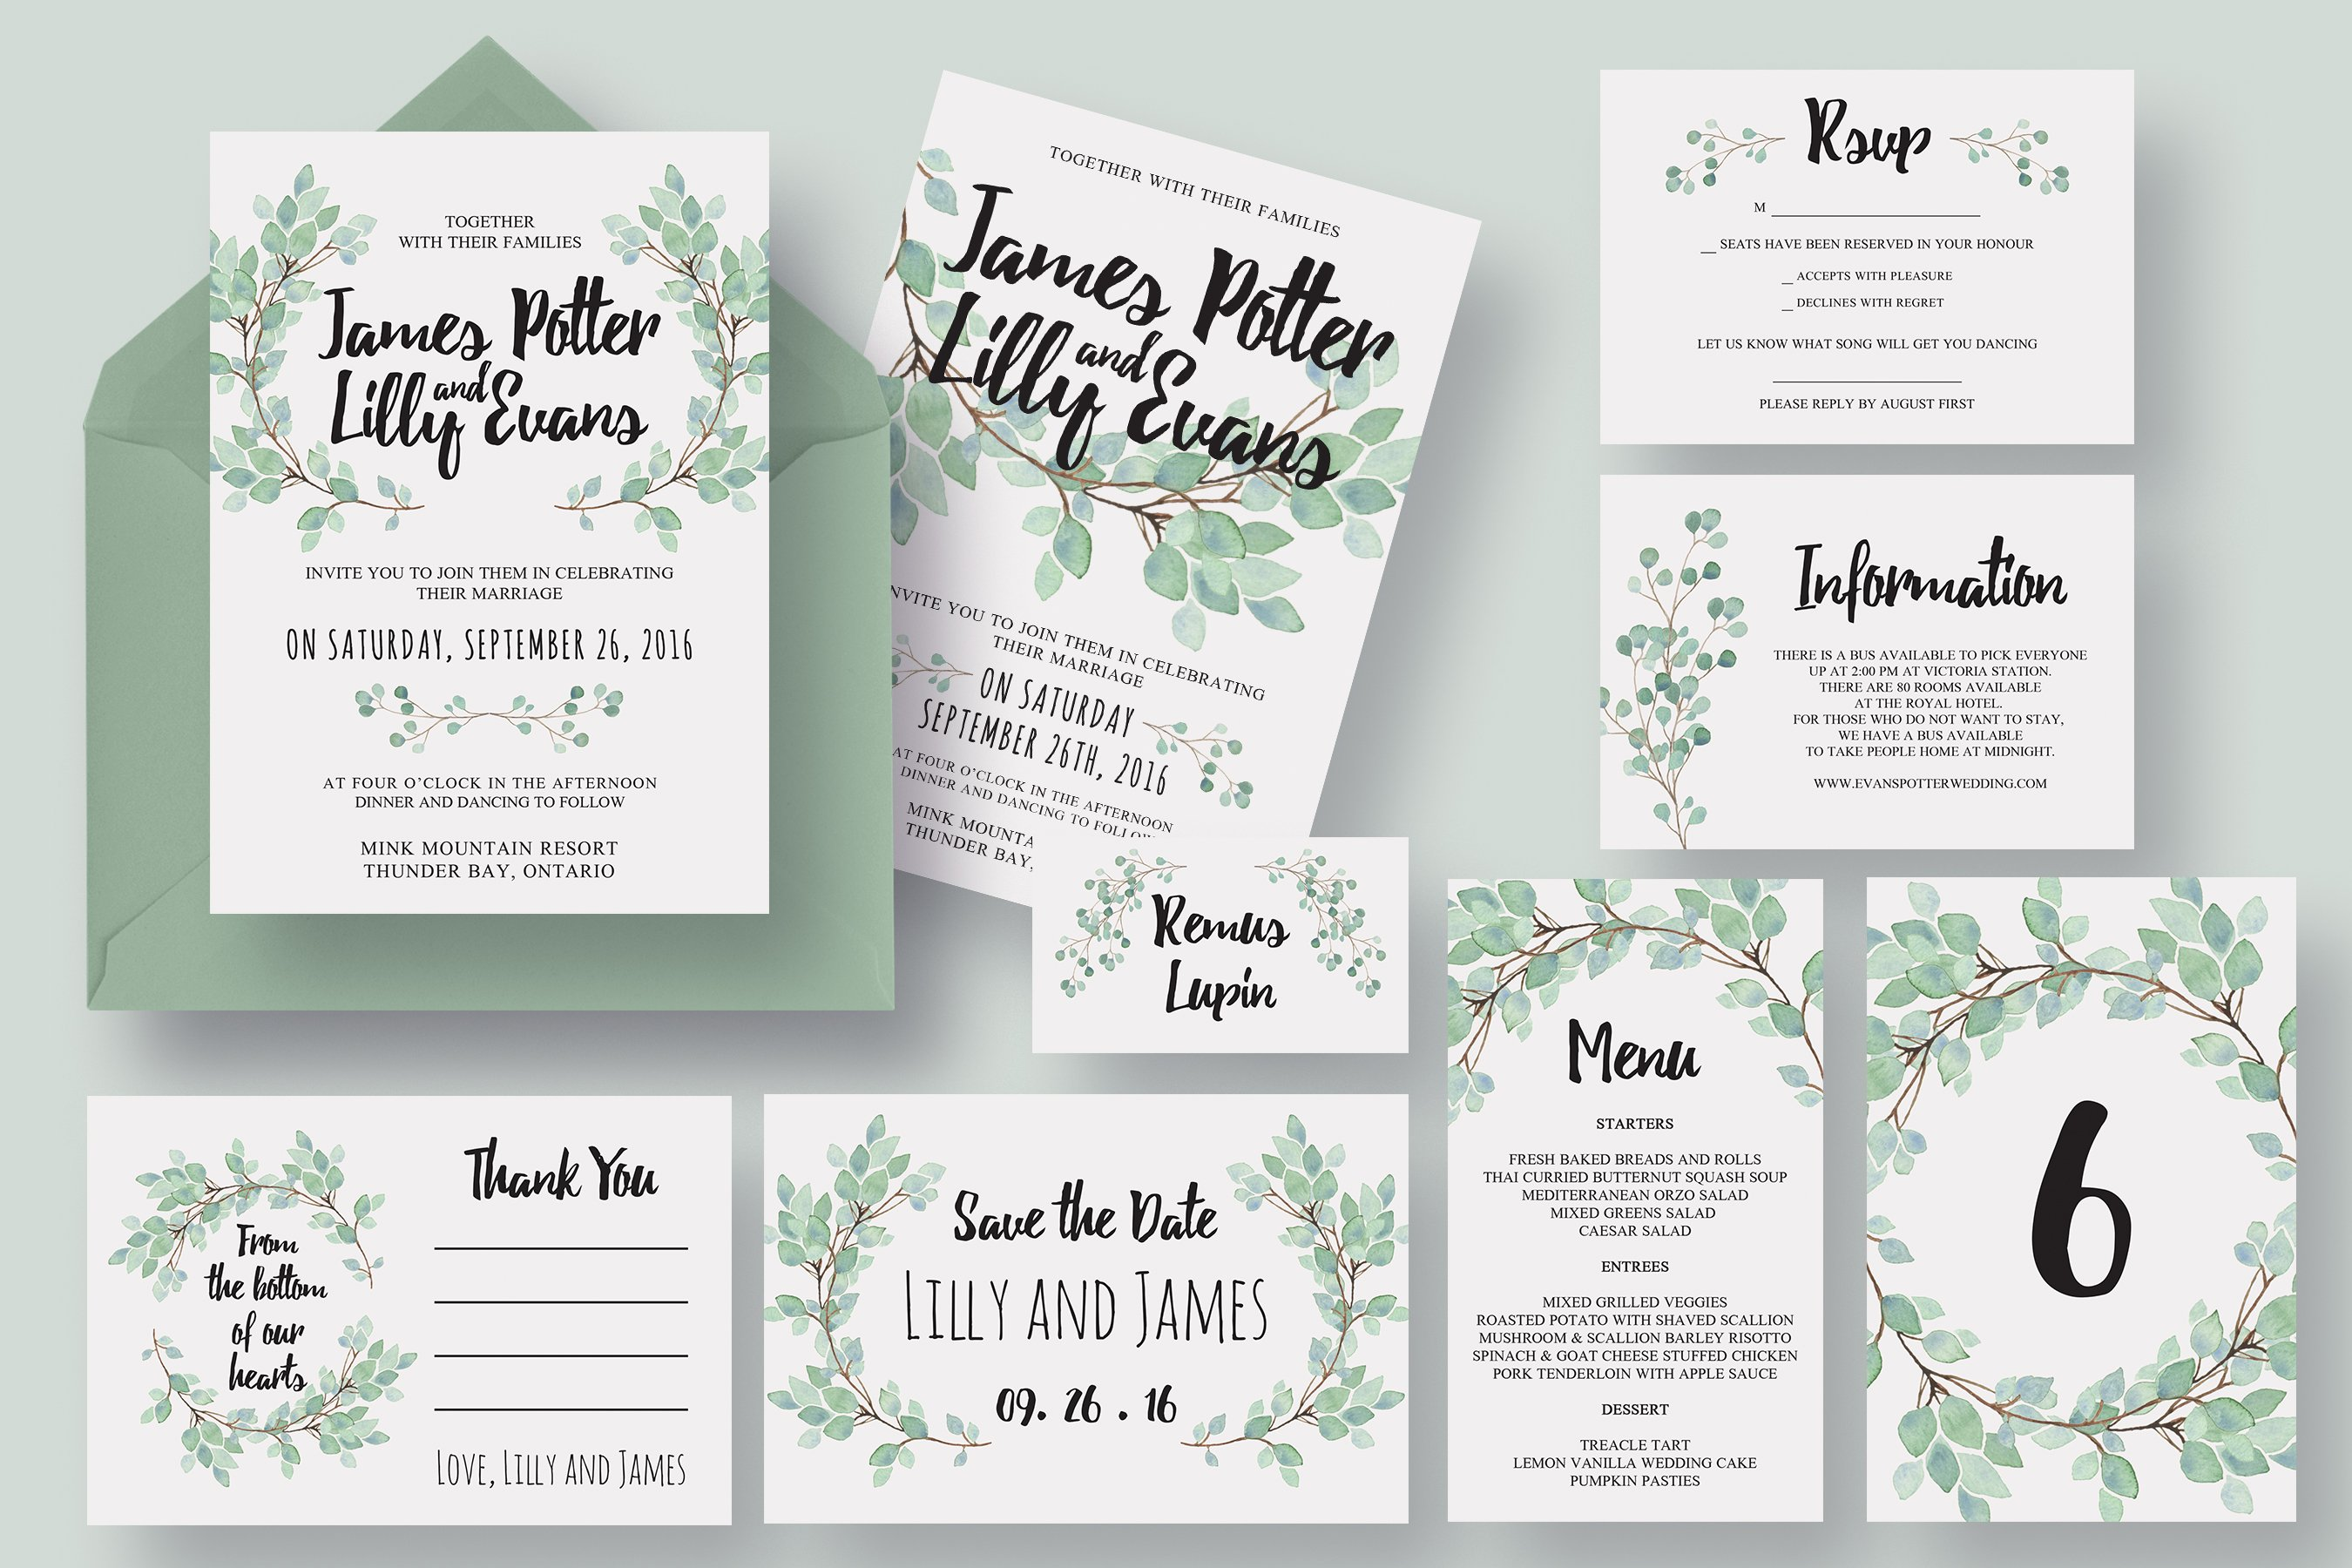 Eucalyptus Wedding Invitation Suite Invitation Templates - Wedding invitation templates: wedding invitation suite templates